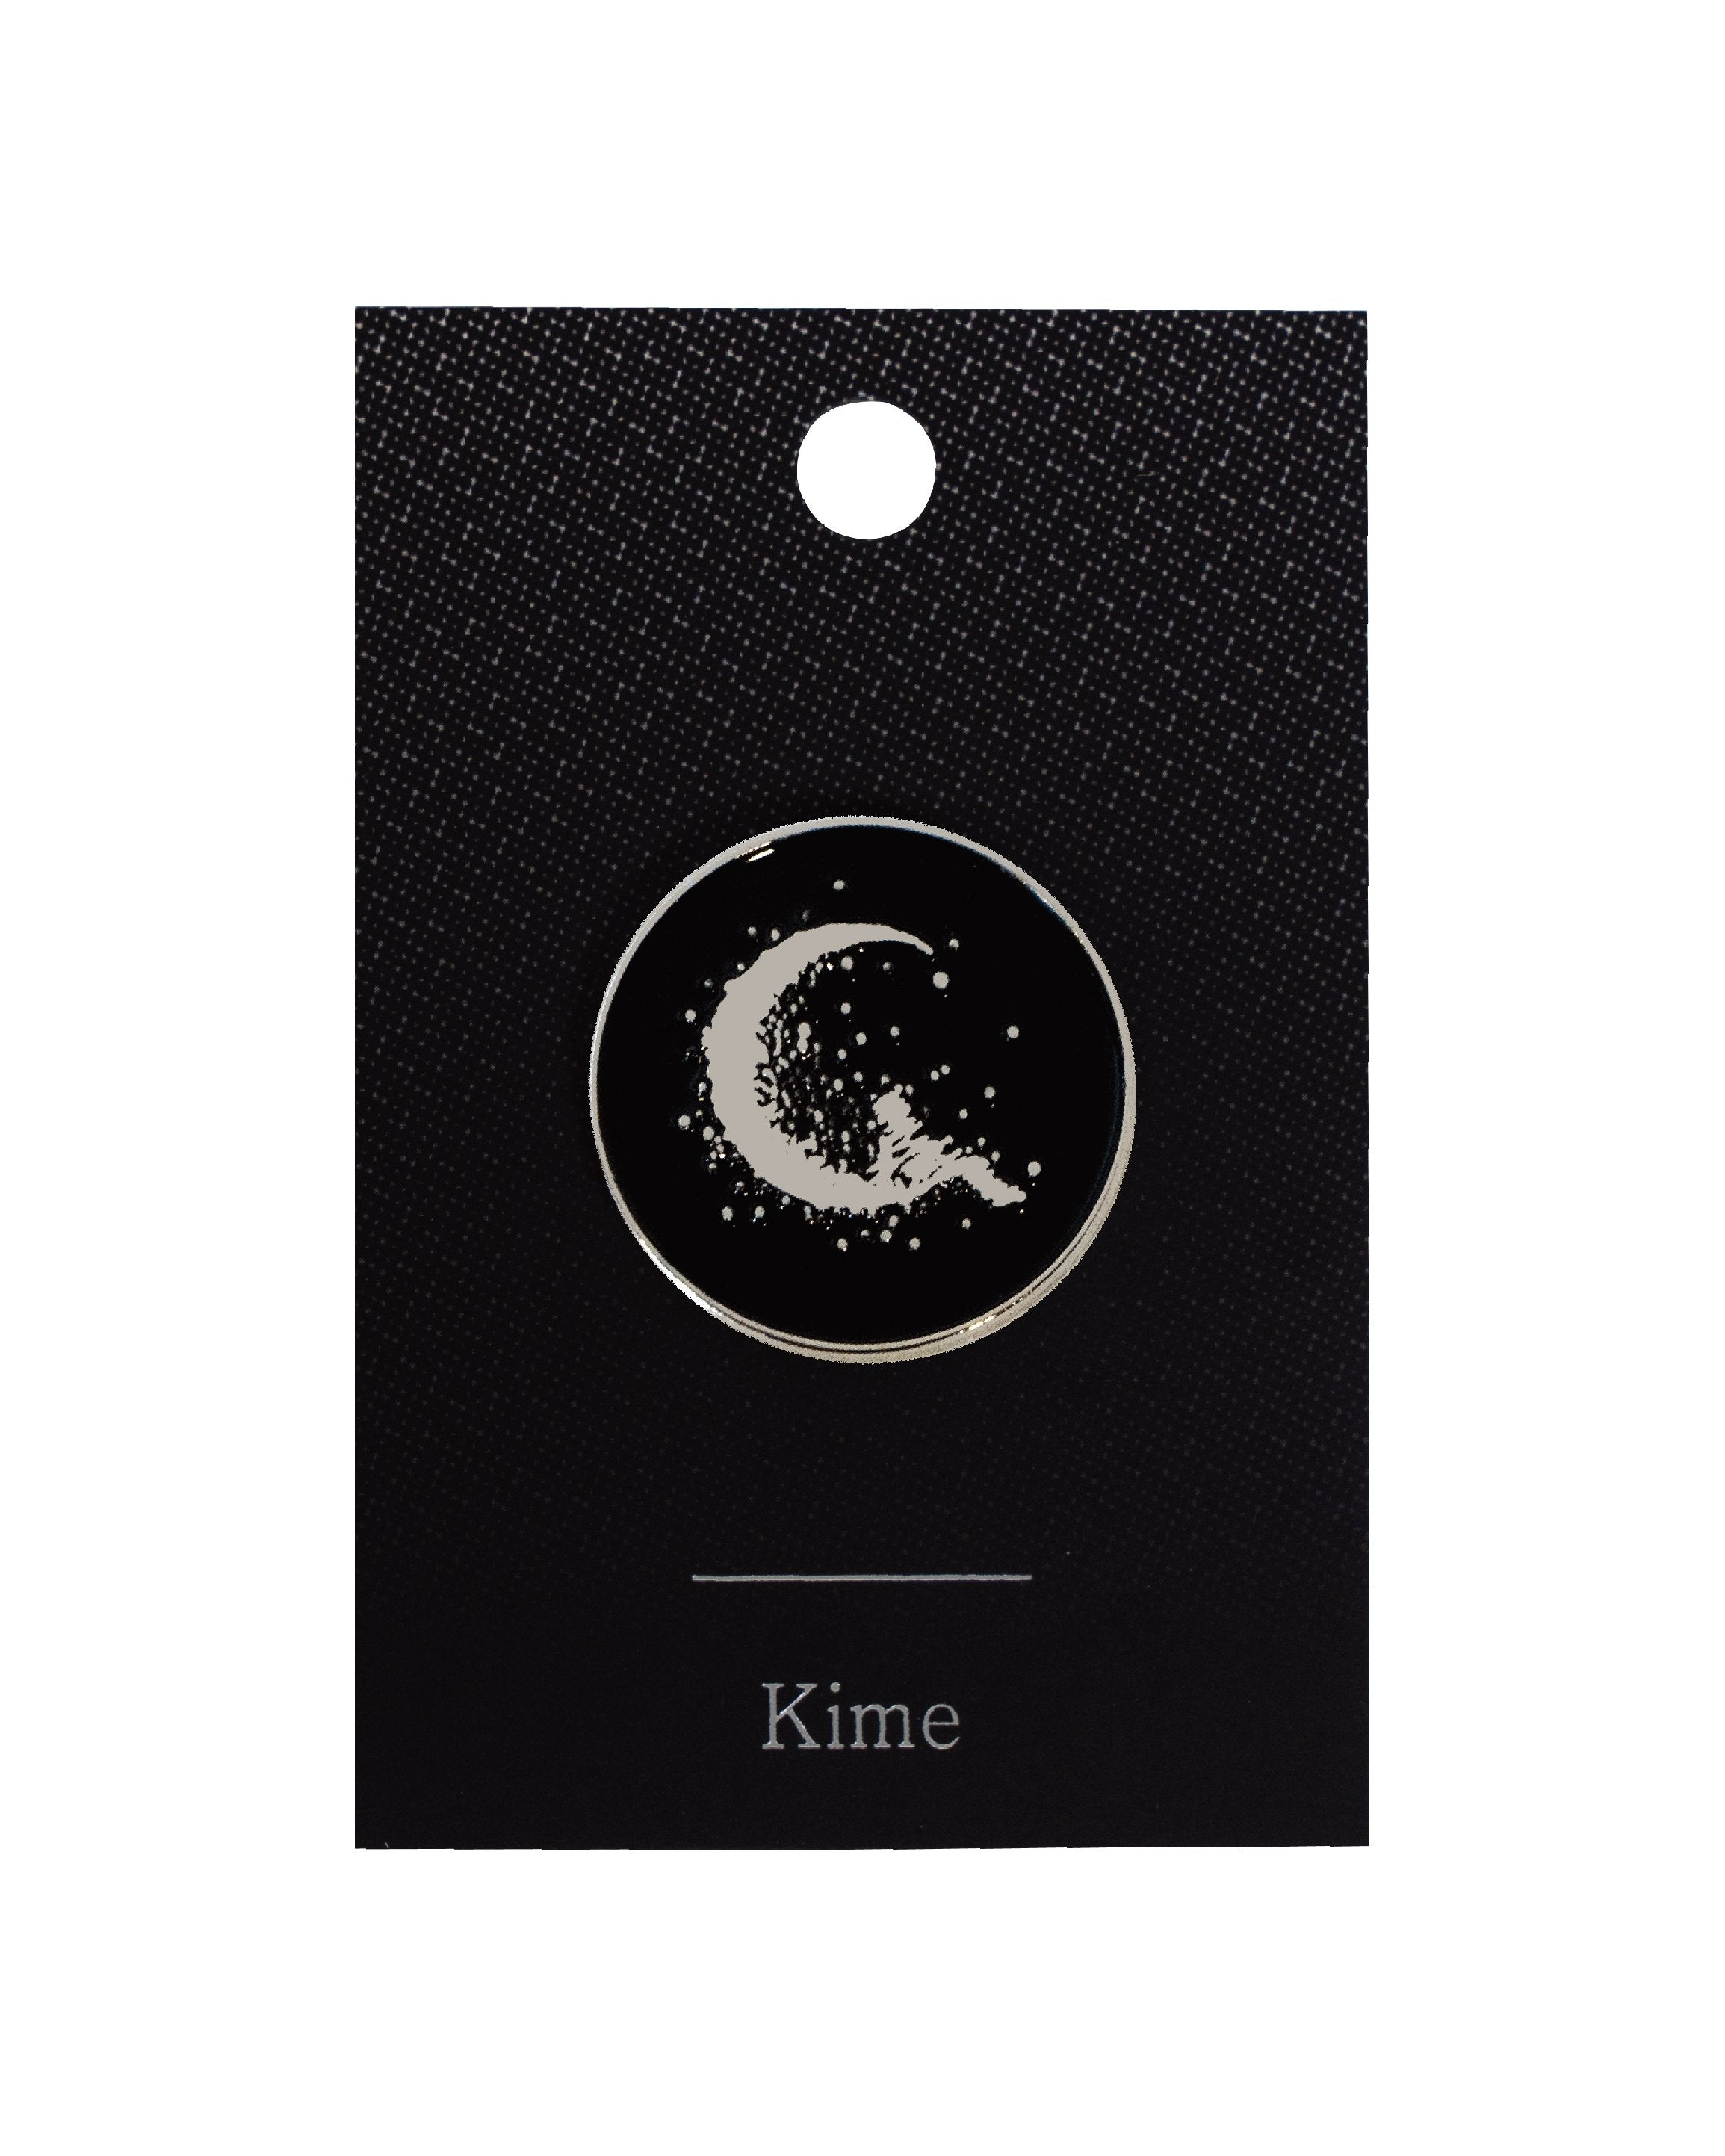 (Badge) Kime 2